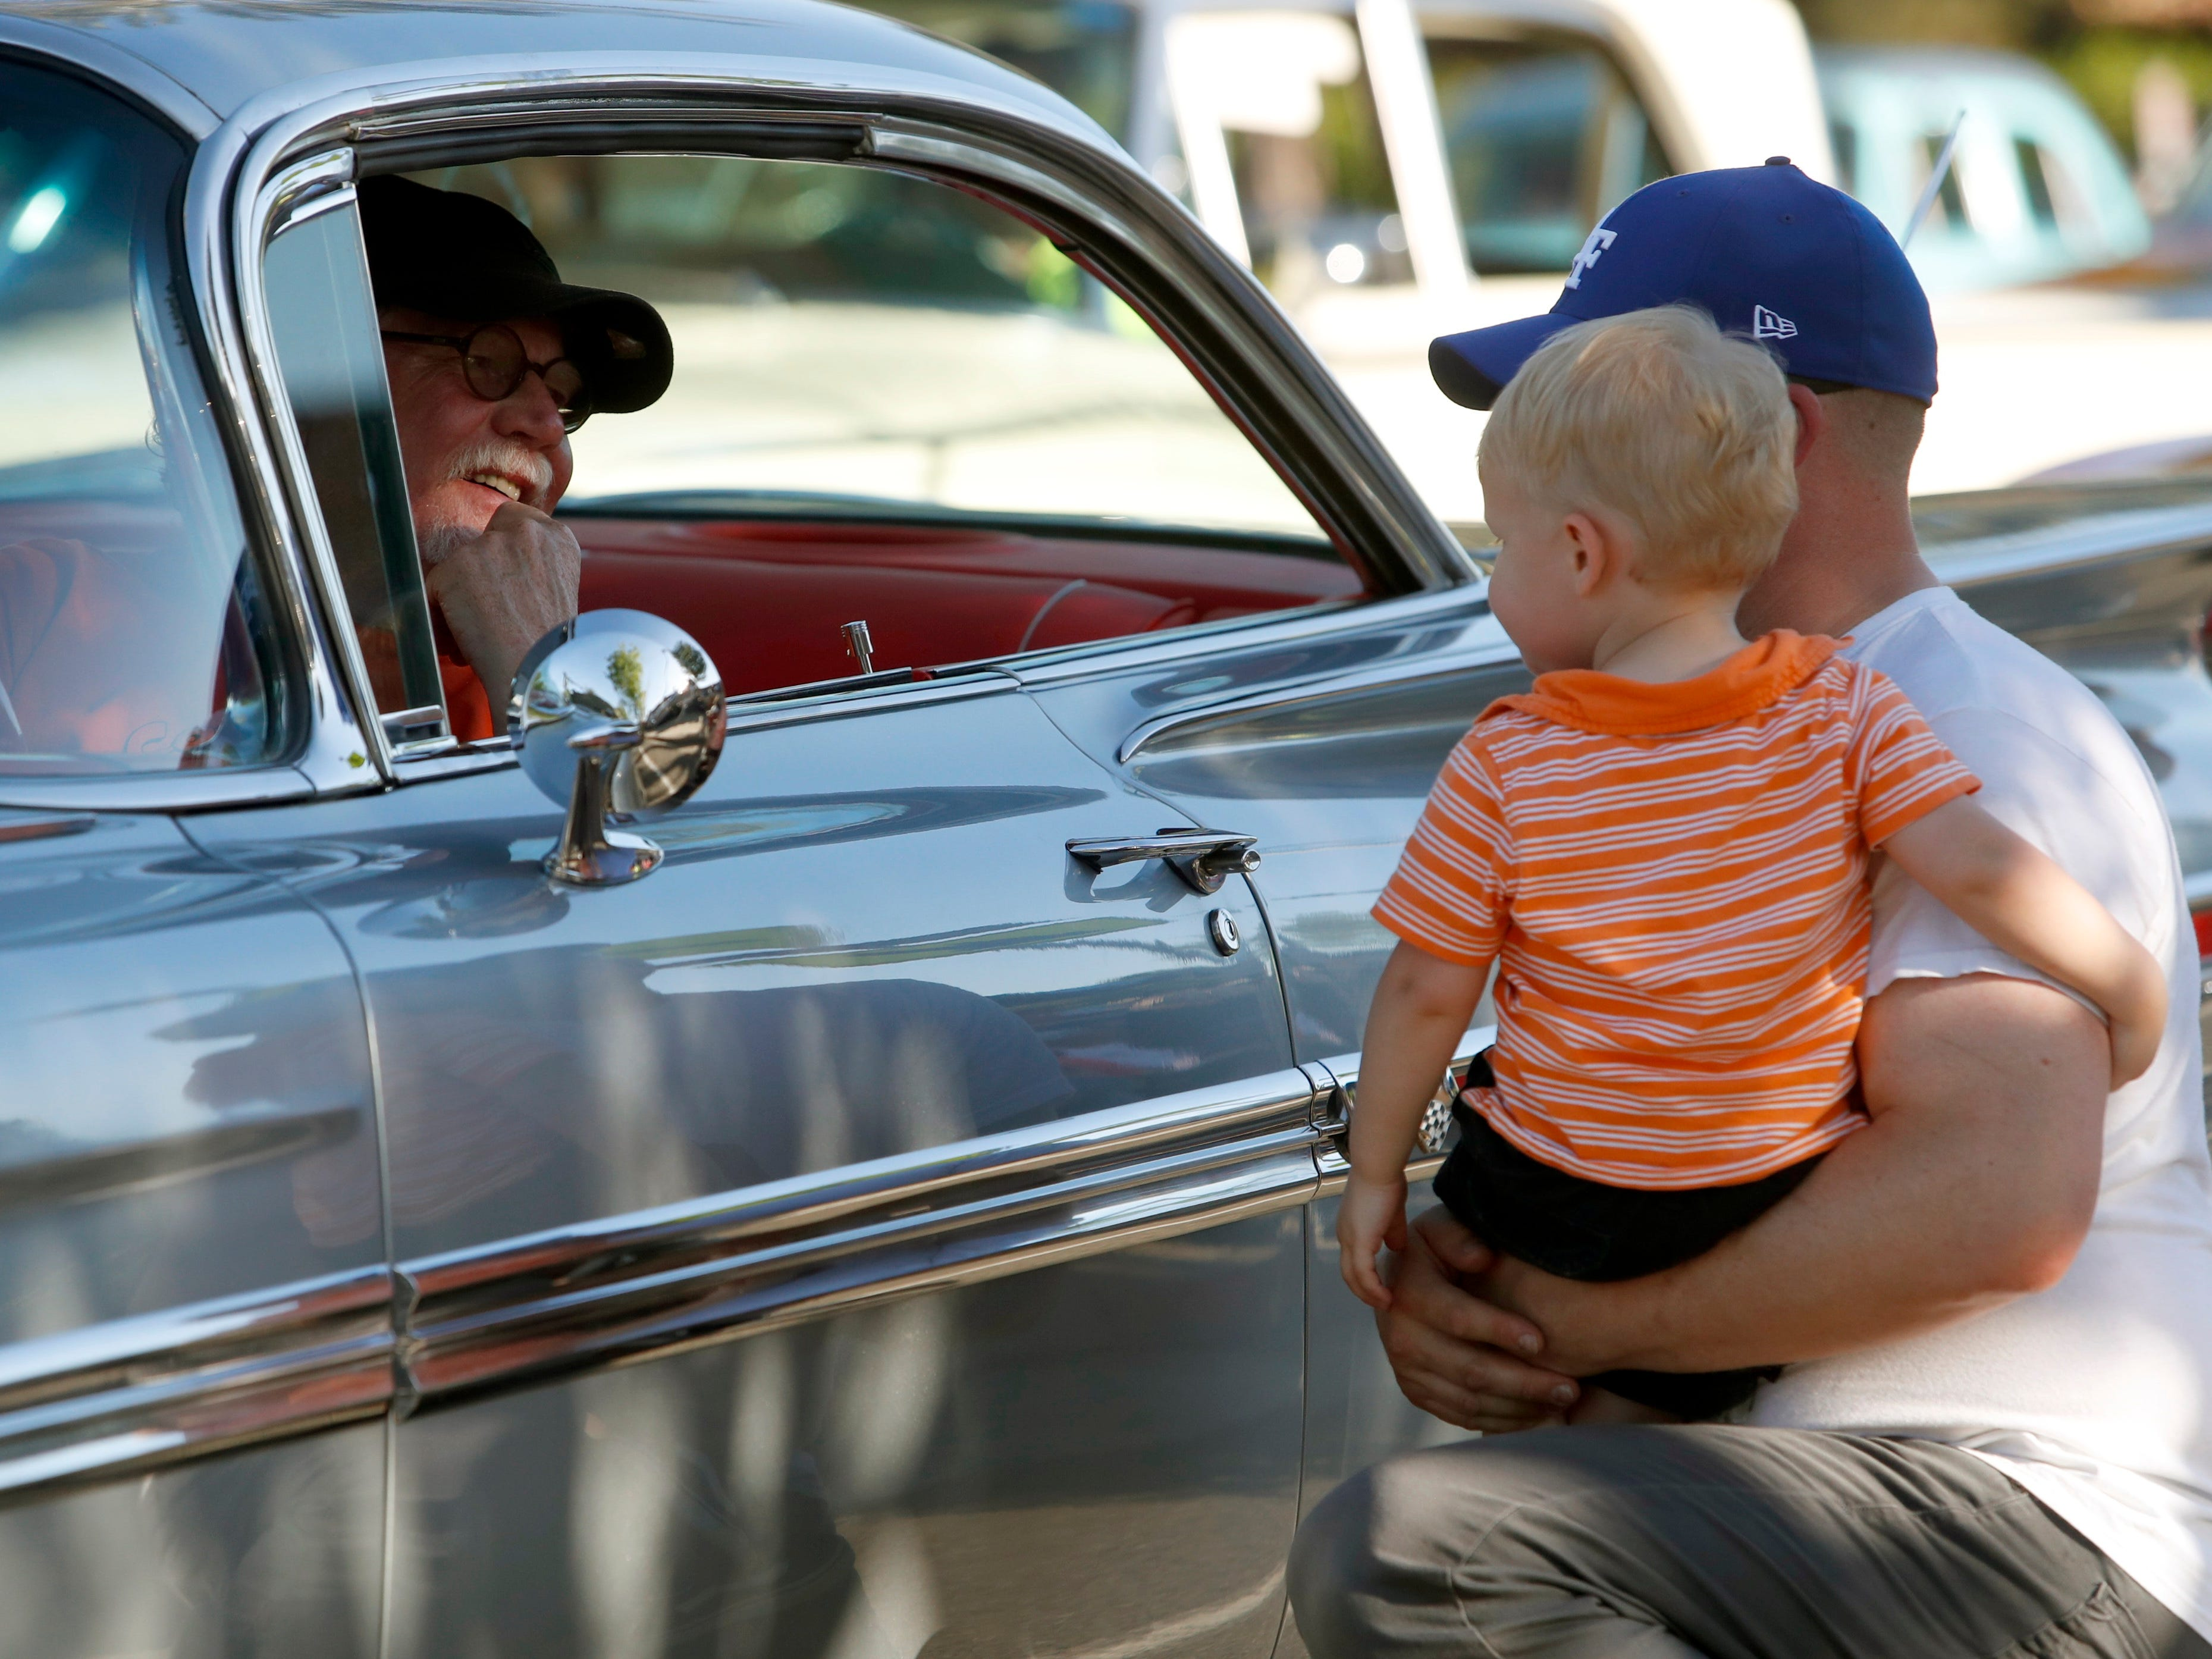 Devon Smith of Redding, right, holds his 20-month-old son Beckett while he chats with a driver before the Friday Nite Cruise gets underway on Hilltop Drive as part of the 2019 Kool April Nites classic car show.